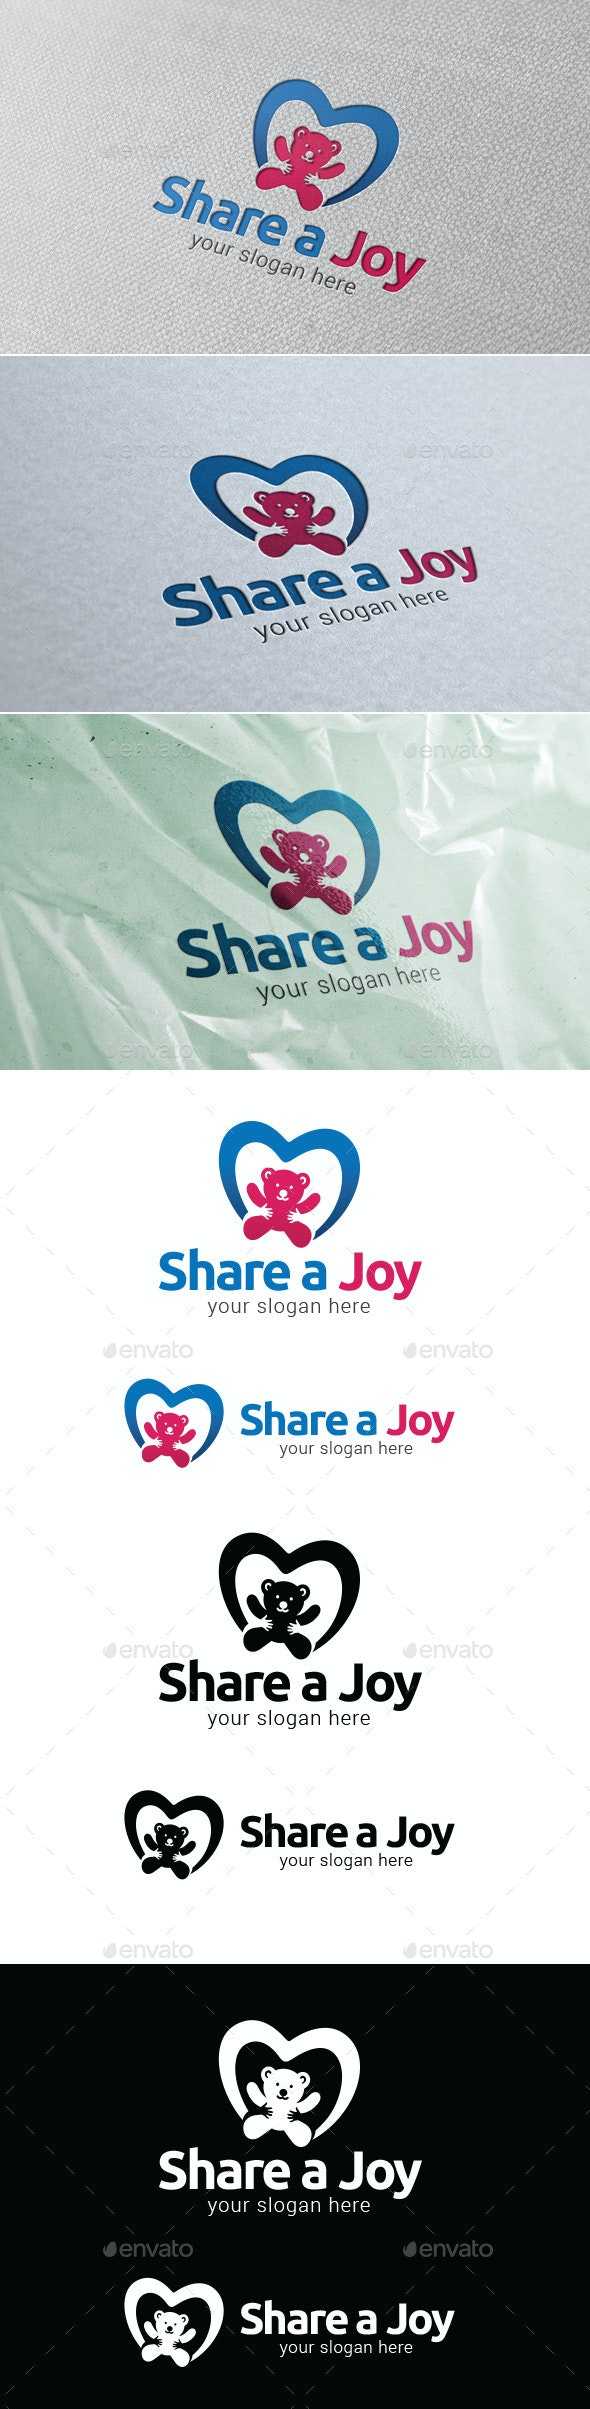 Share A Joy Logo Template - Objects Logo Templates